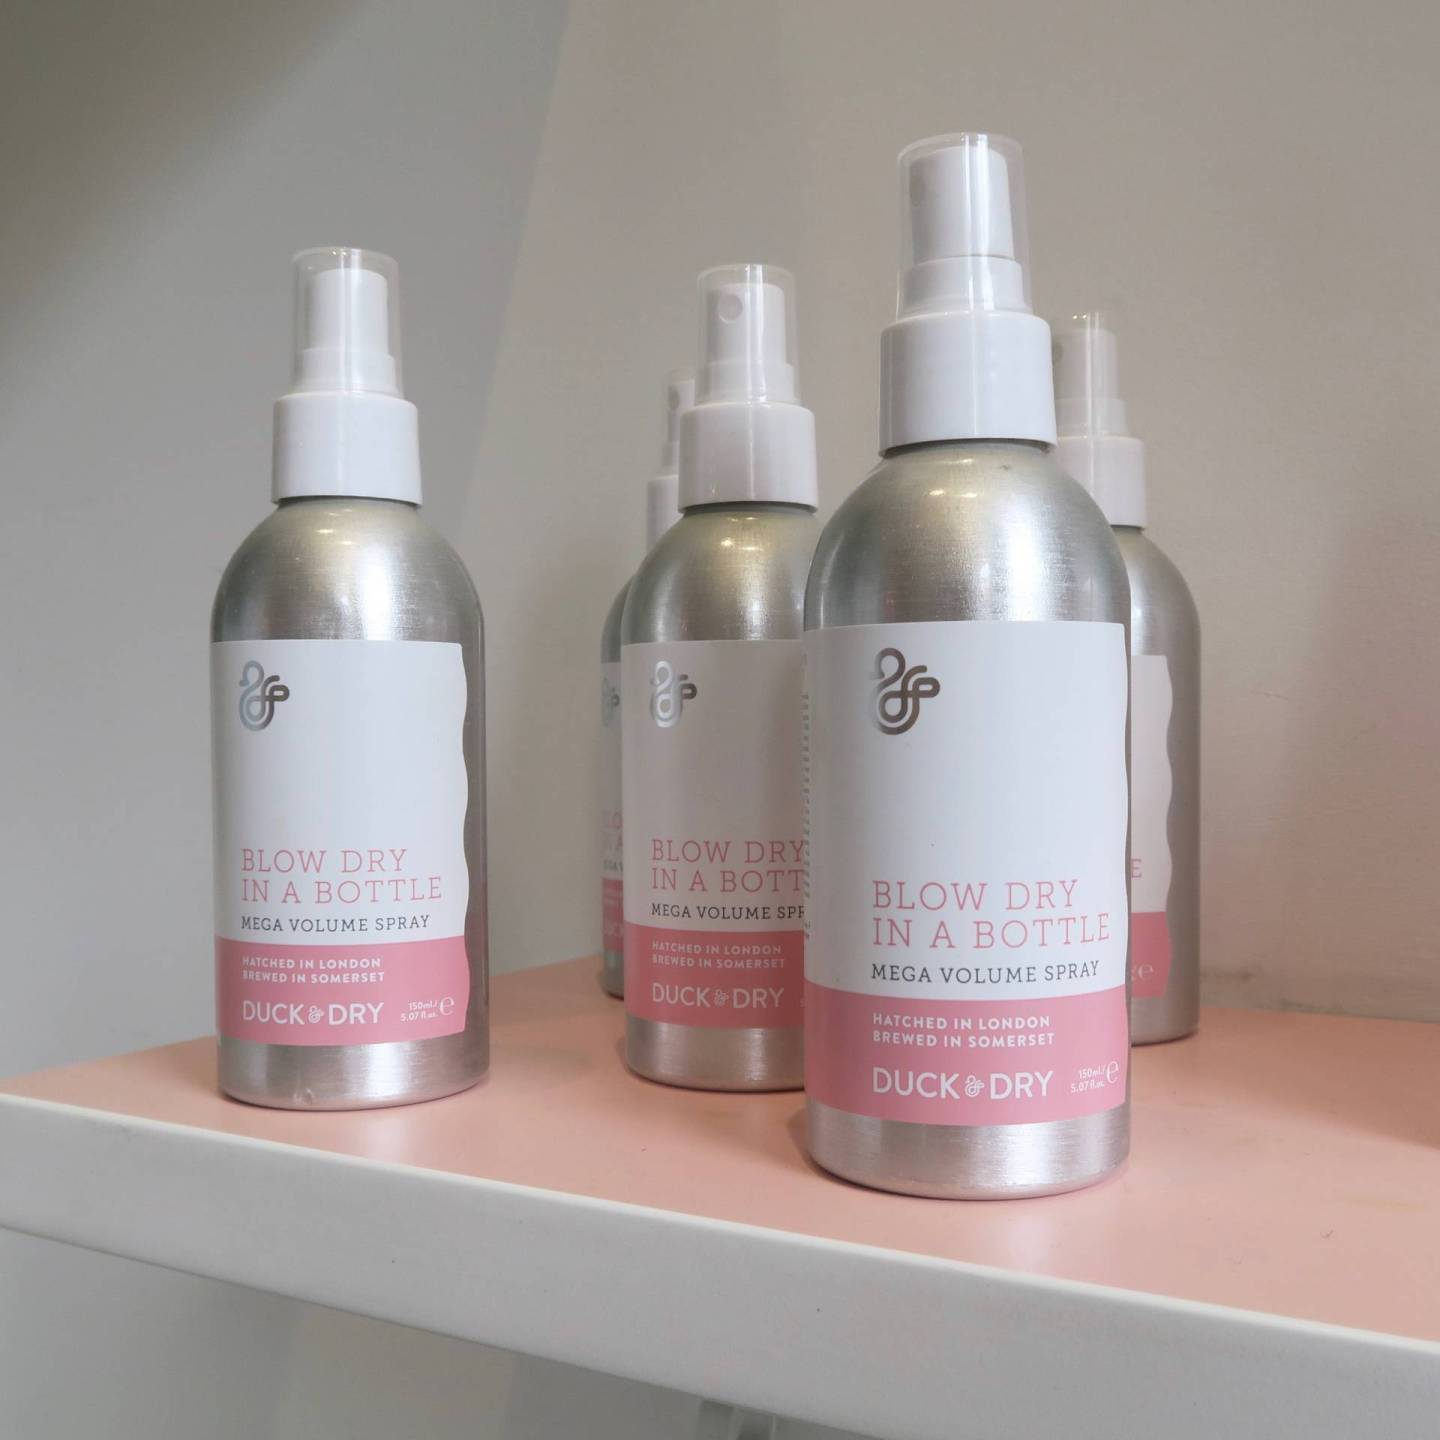 Duck-and-Dry-Blow-Dry-Review-14